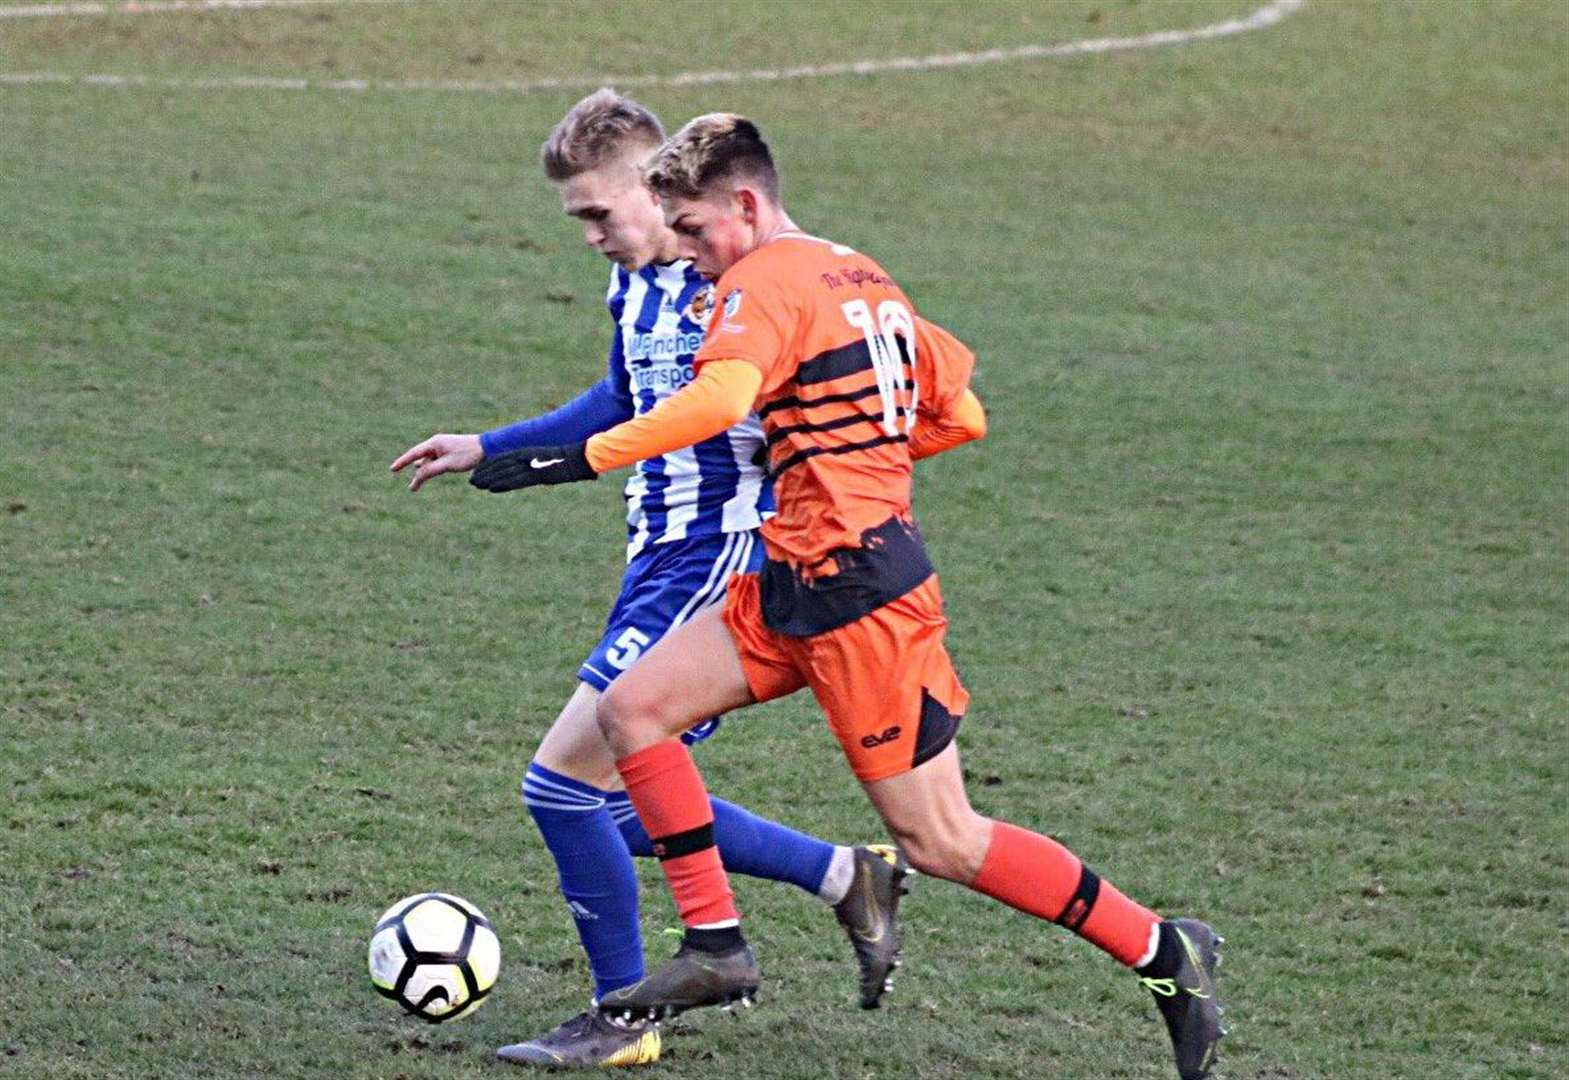 Goodson brace seals points as Flowserve race past Warwick